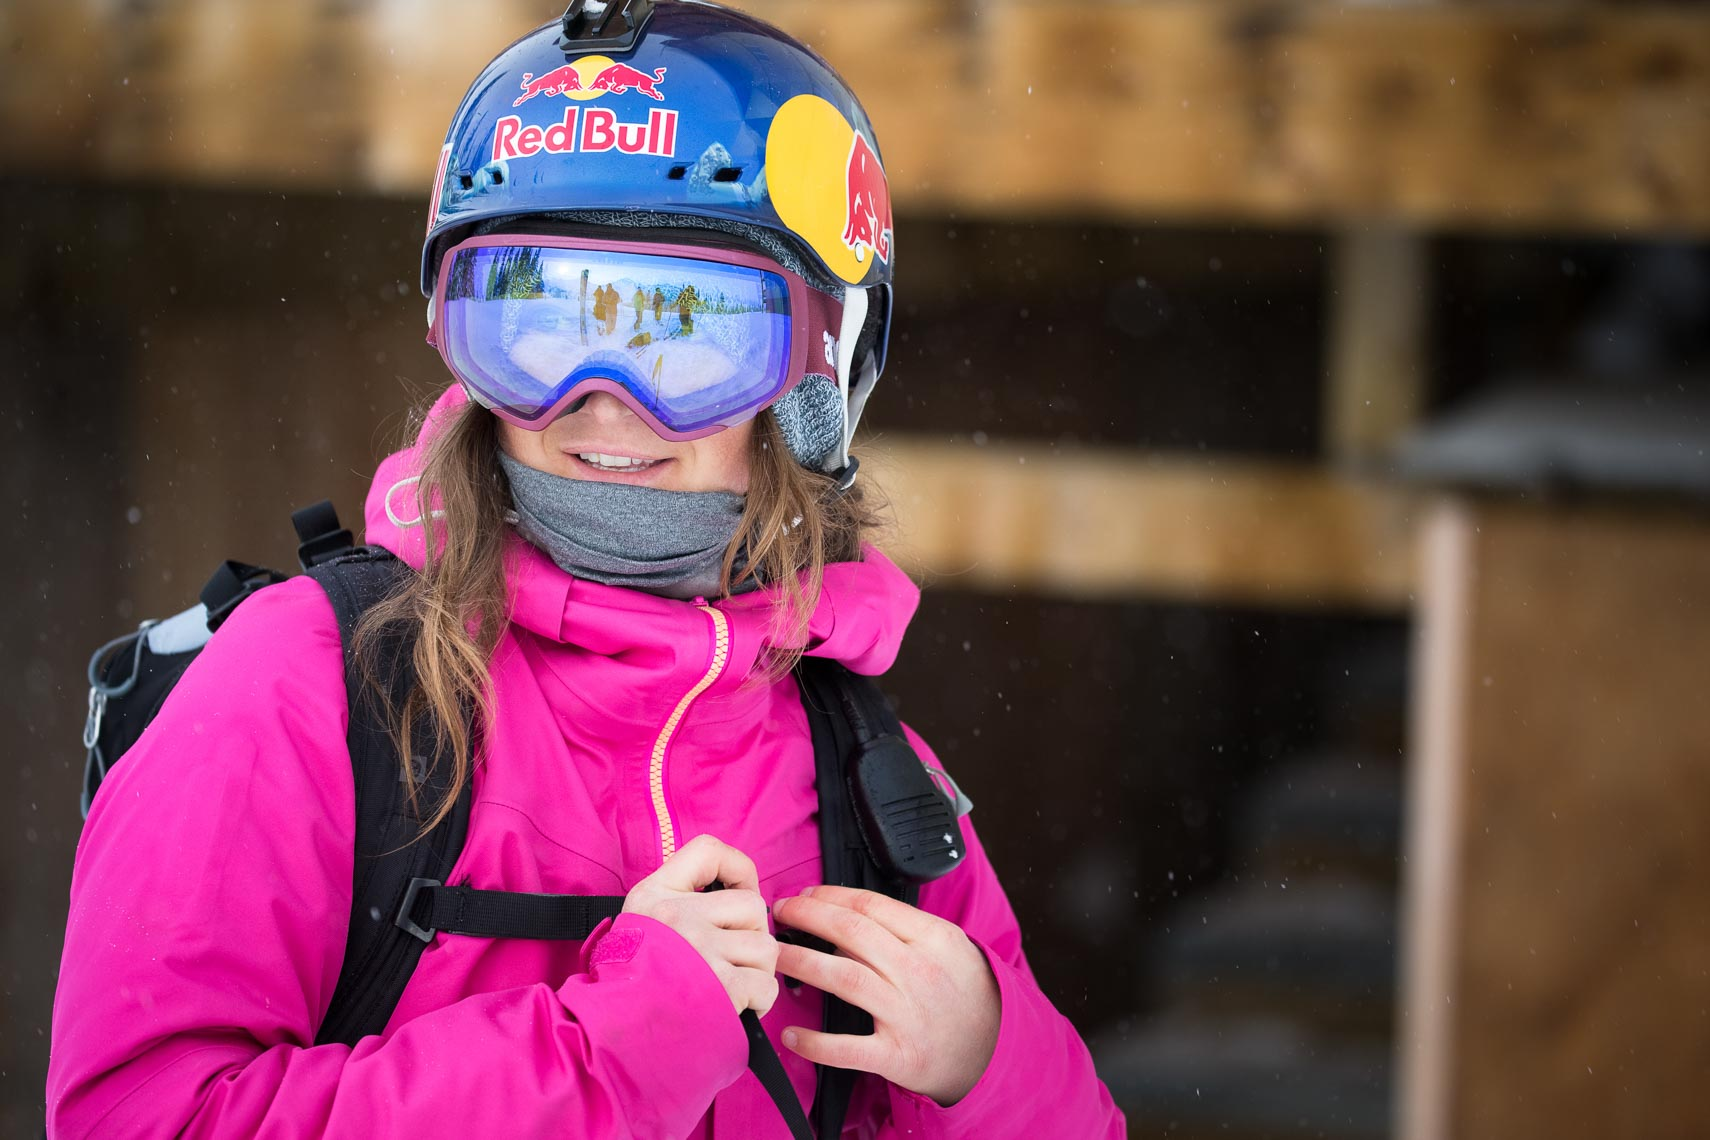 Redbull sponsored female skier in Canada by ski photographer